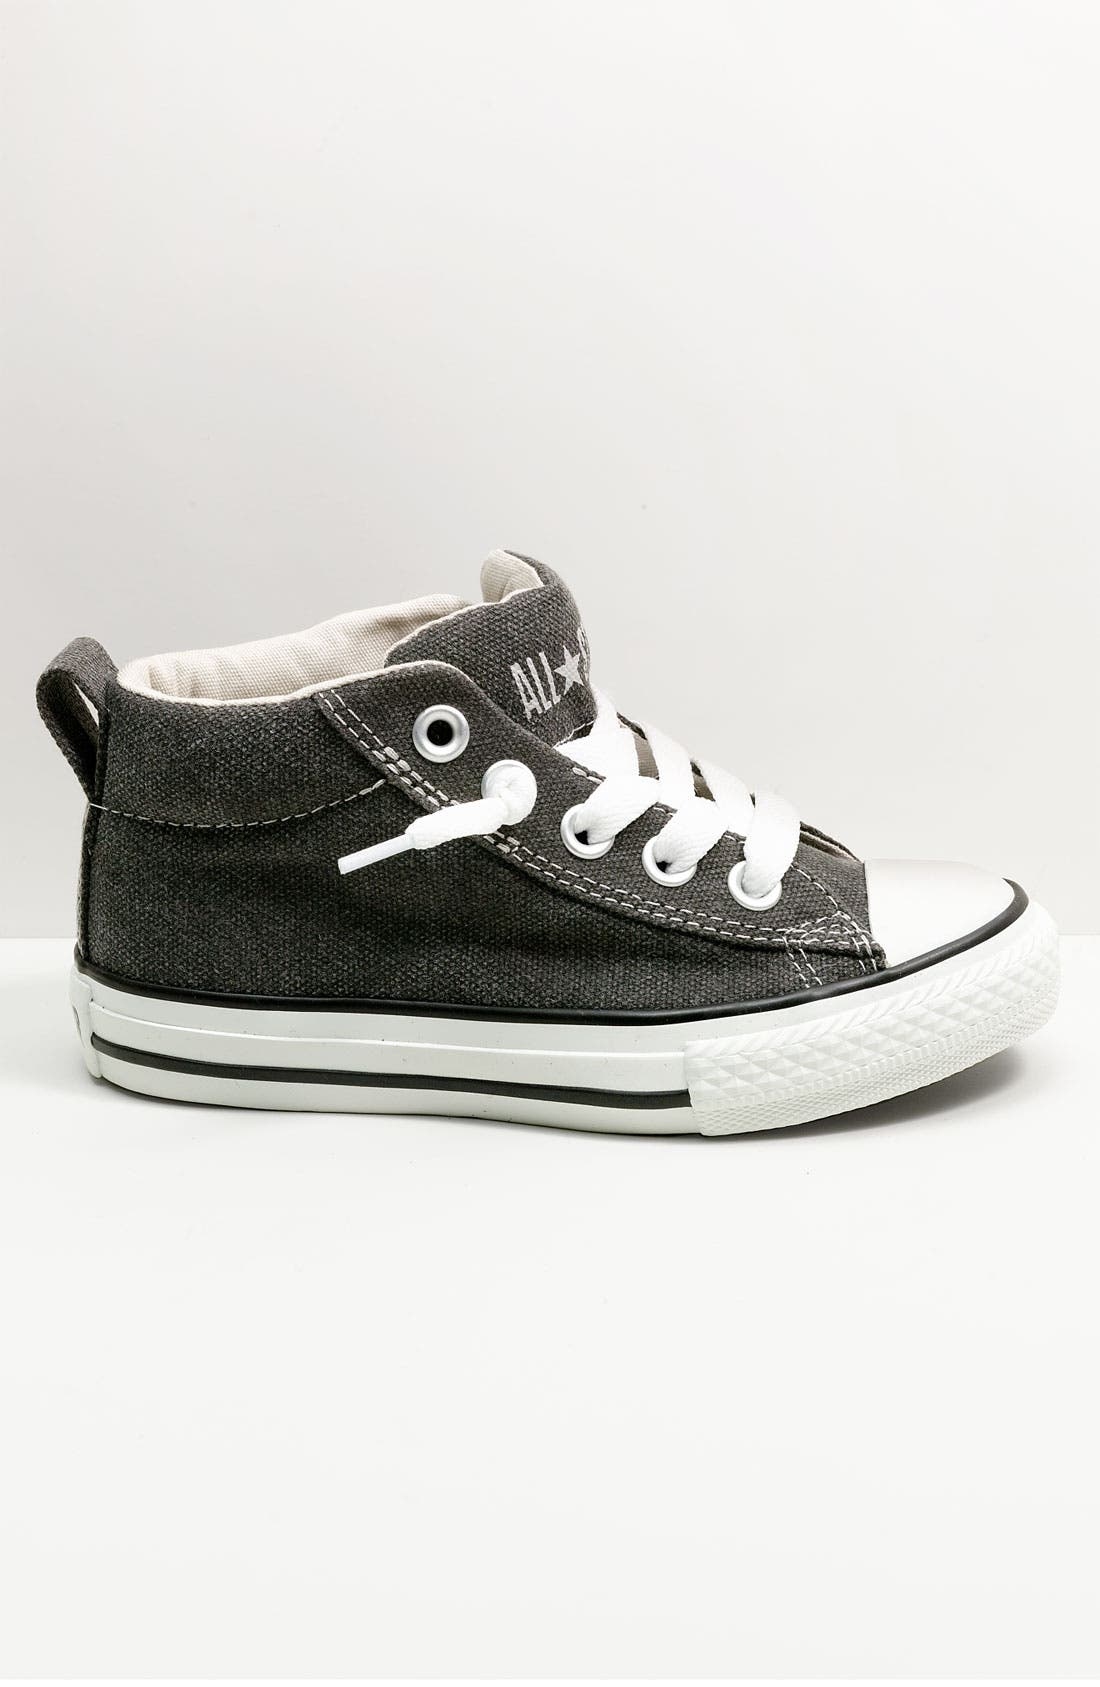 Chuck Taylor<sup>®</sup> 'Street Mid Cab' Slip-On Sneaker,                             Main thumbnail 1, color,                             007